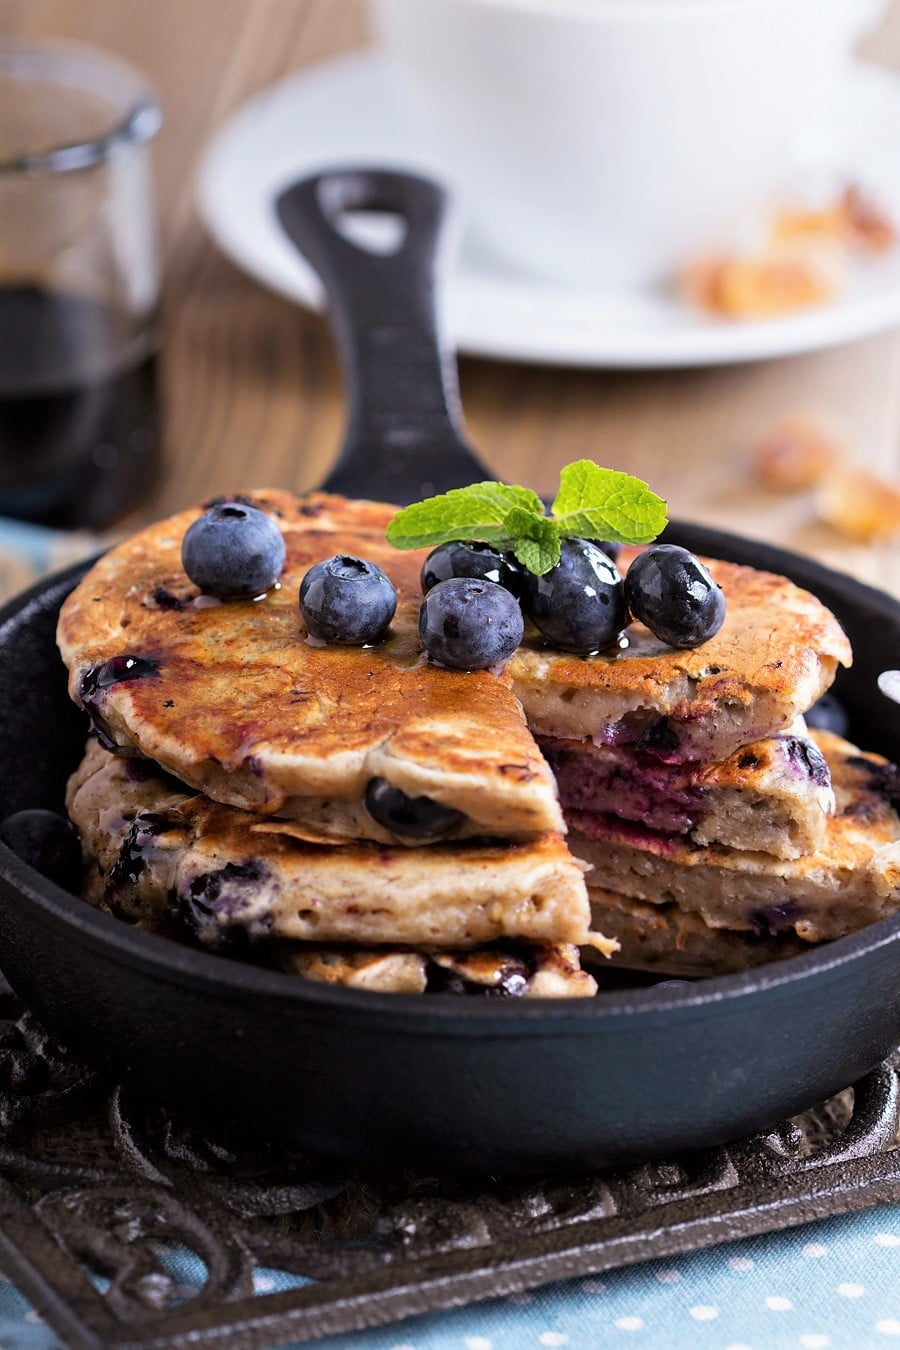 How to make blueberry banana pancakes (vegan)